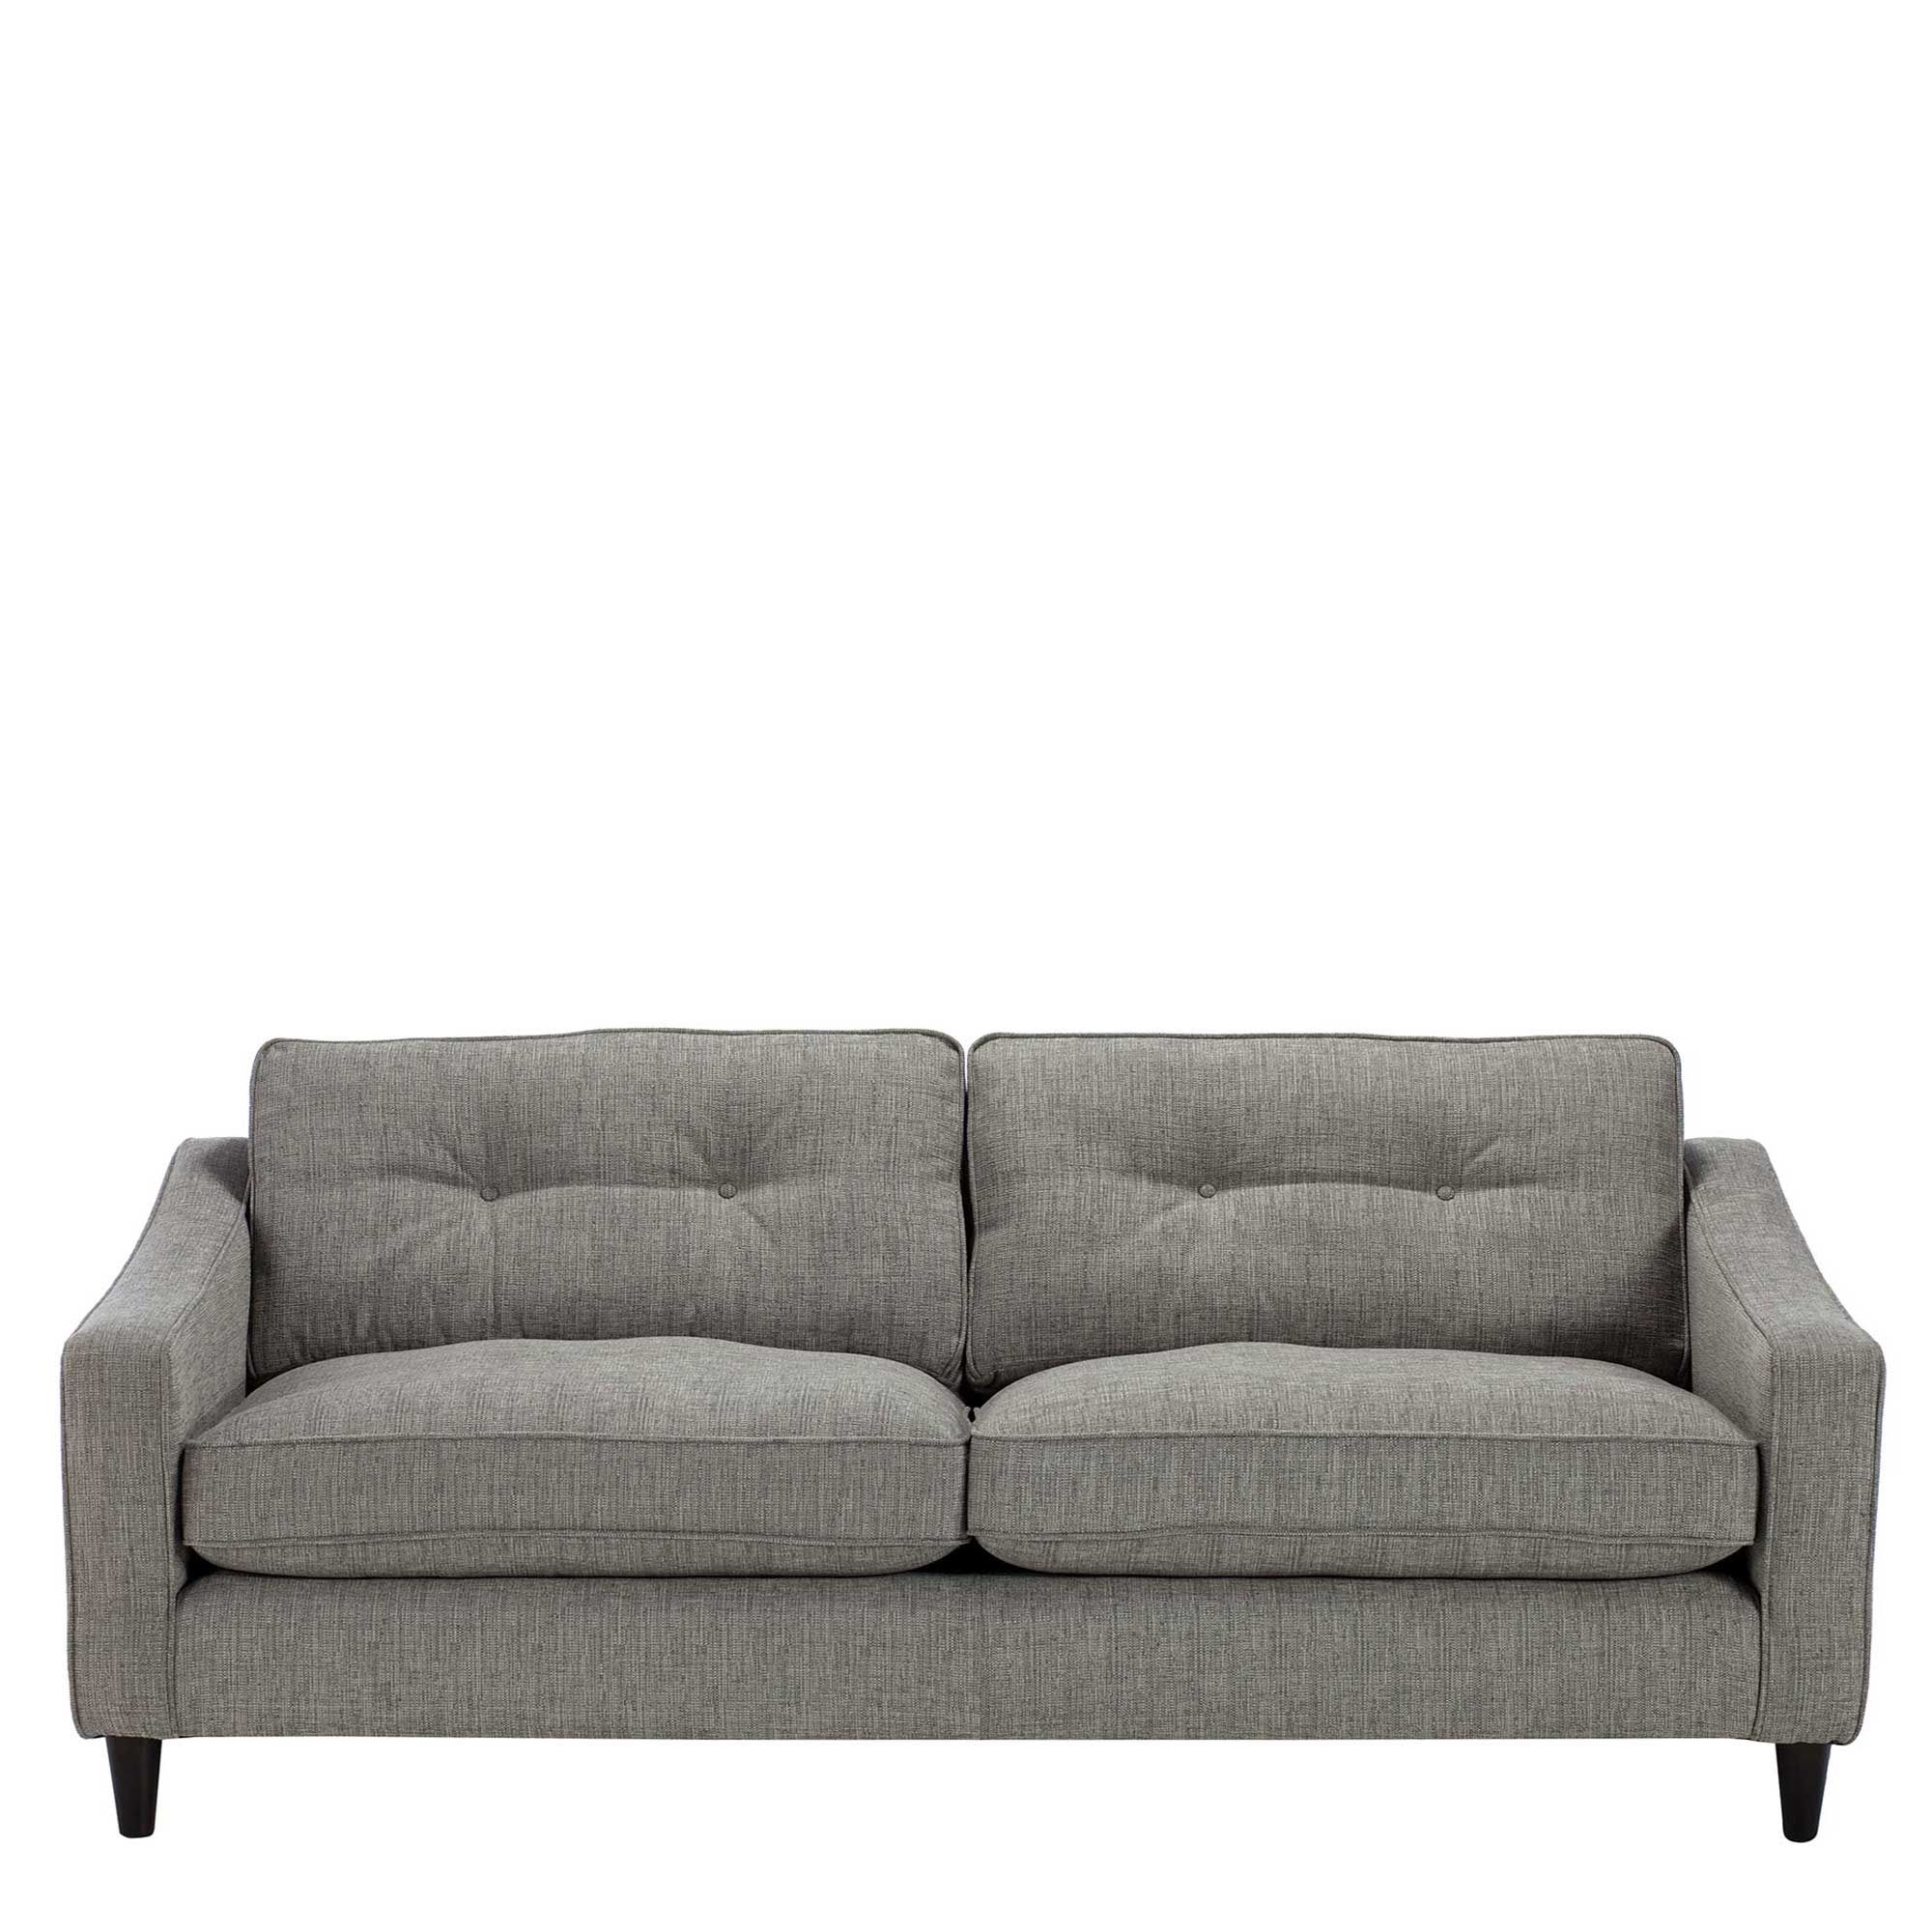 claudio extra large sofa milano pewter chairs living room